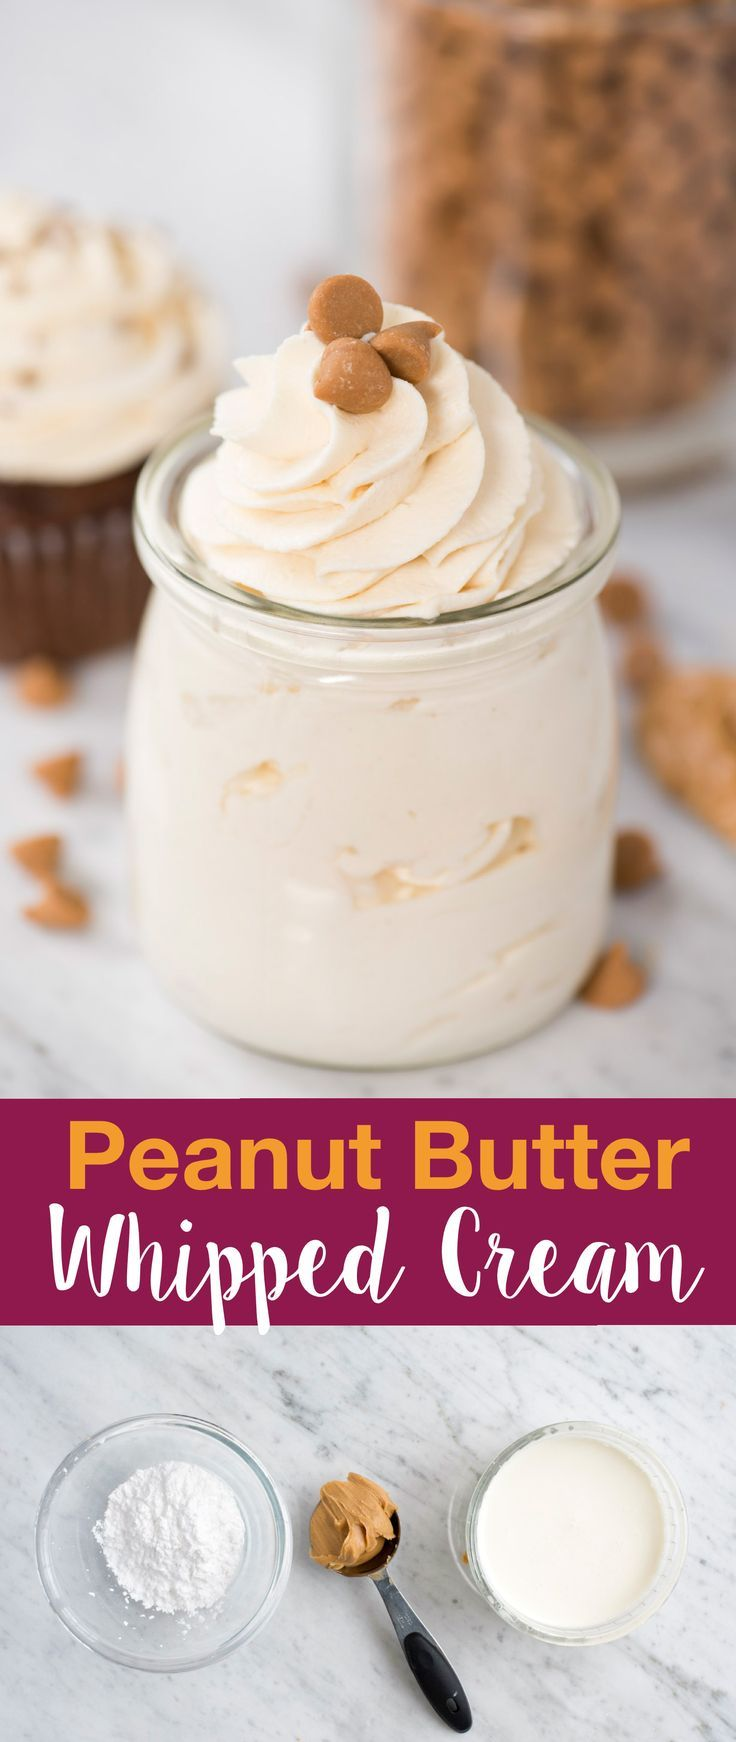 Easy to make peanut butter whipped cream frosting! This peanut butter whipped cr…